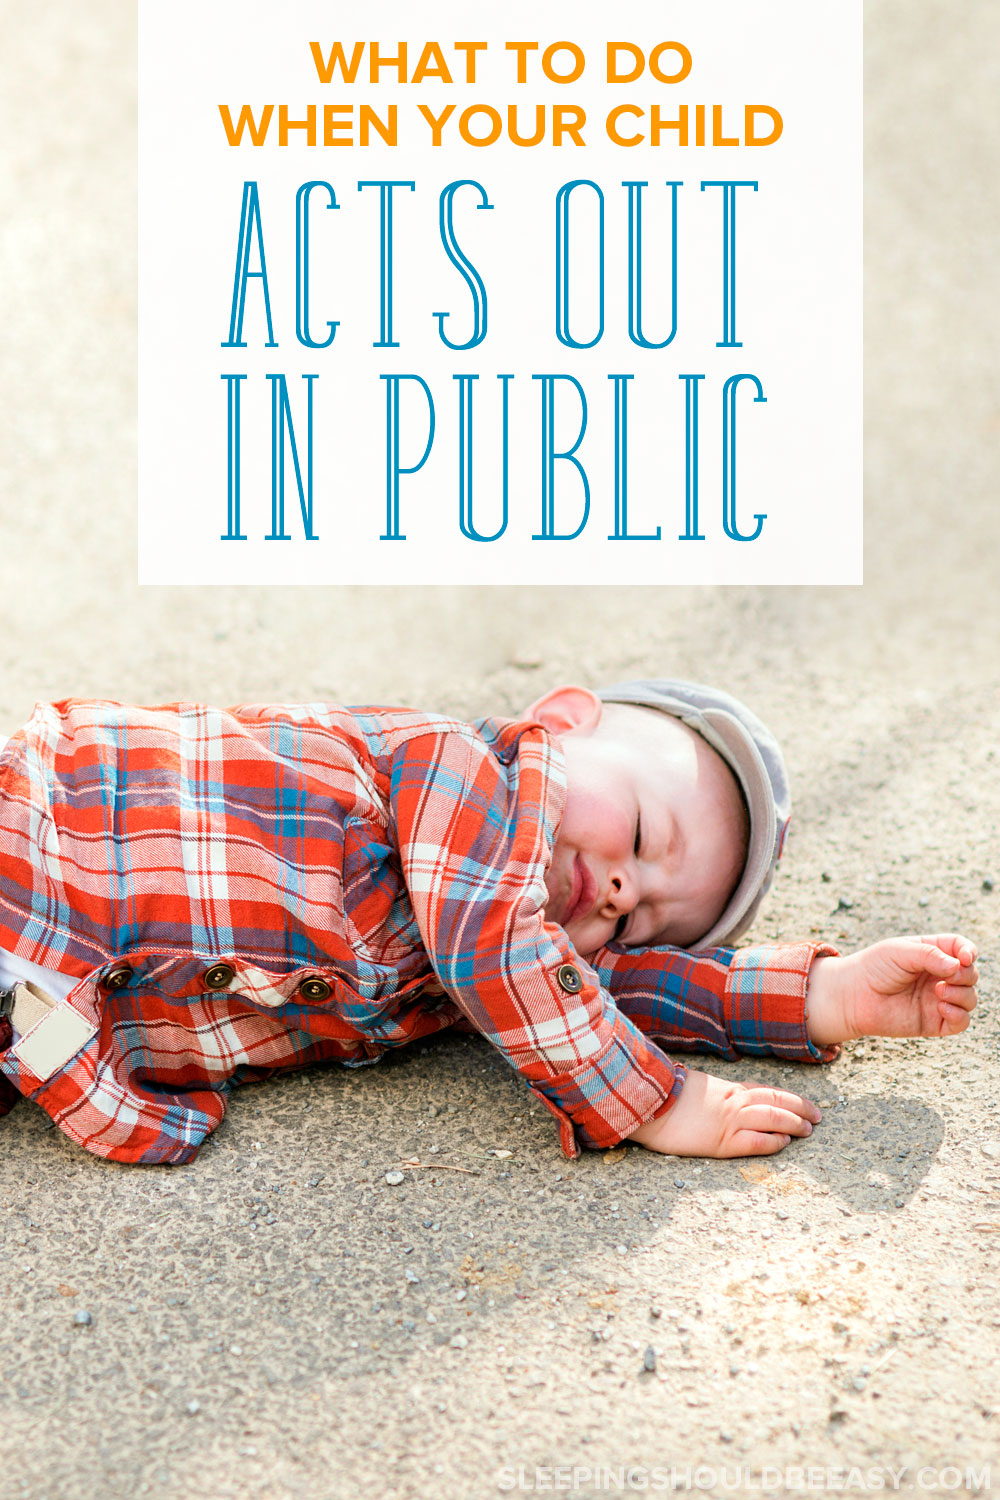 From family parties to restaurants, what do you do when your misbehaving child acts out in public? Learn how to best handle a tantrum in front of others.